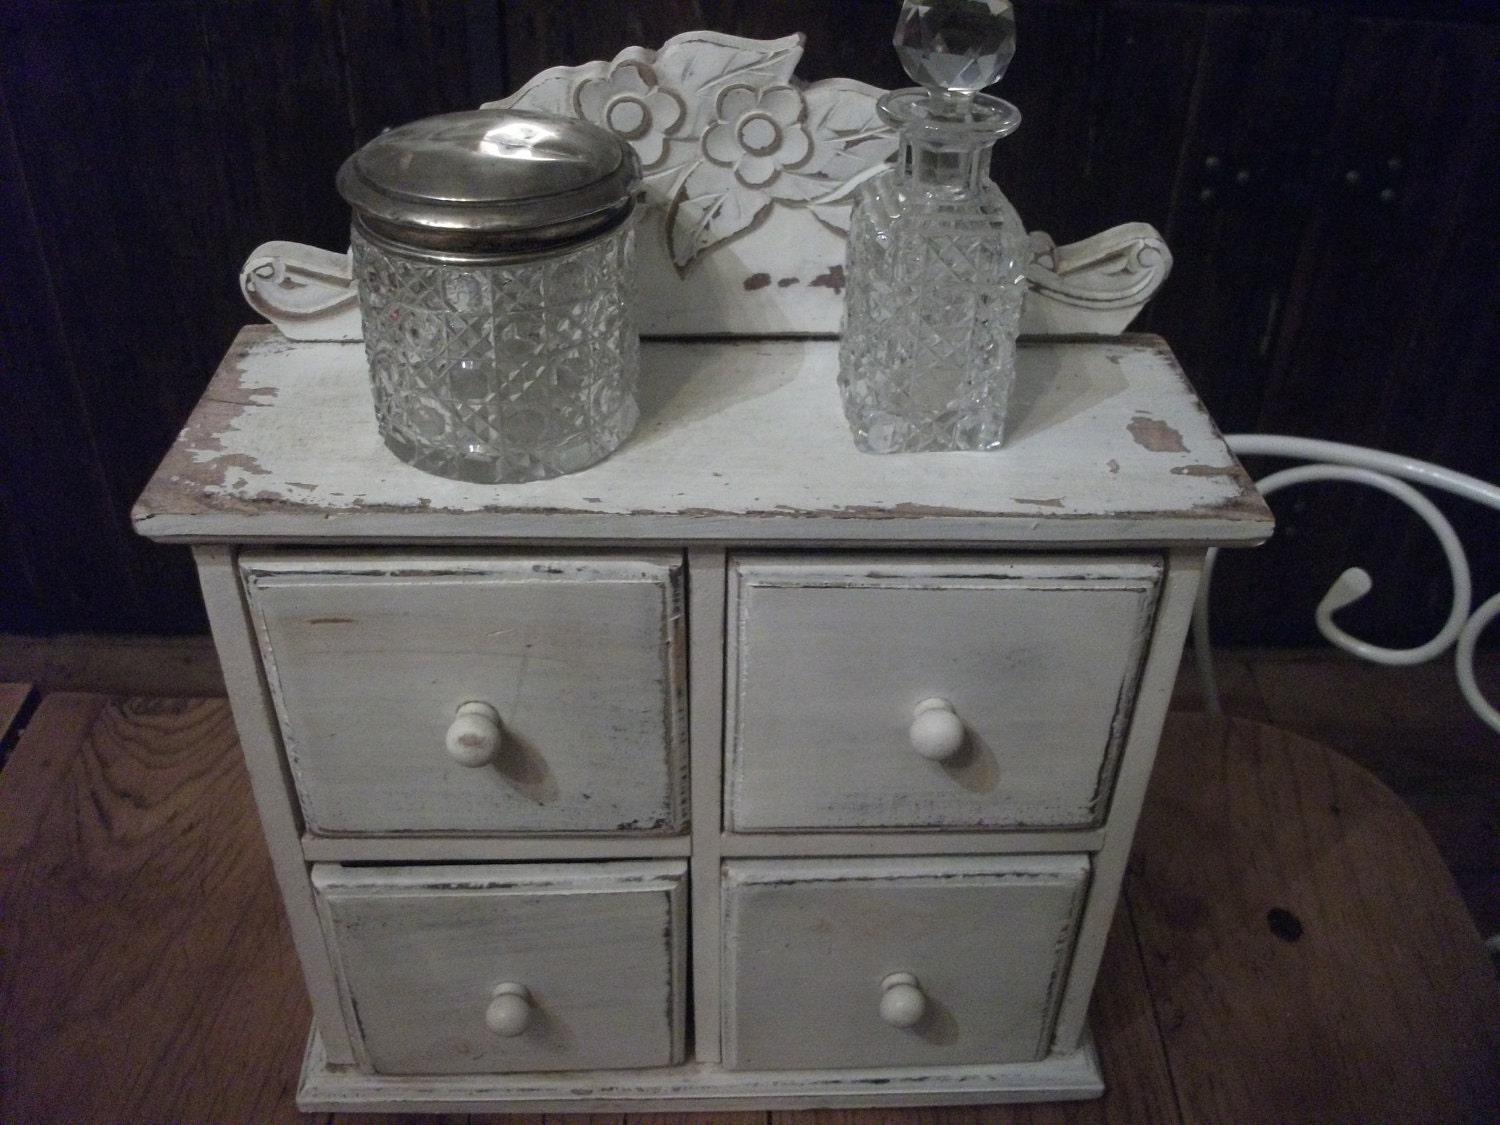 Sale Wooden Vanity Dresser Box Shabby Chic Wall Cupboard Storage Bathroom Kitchen Office